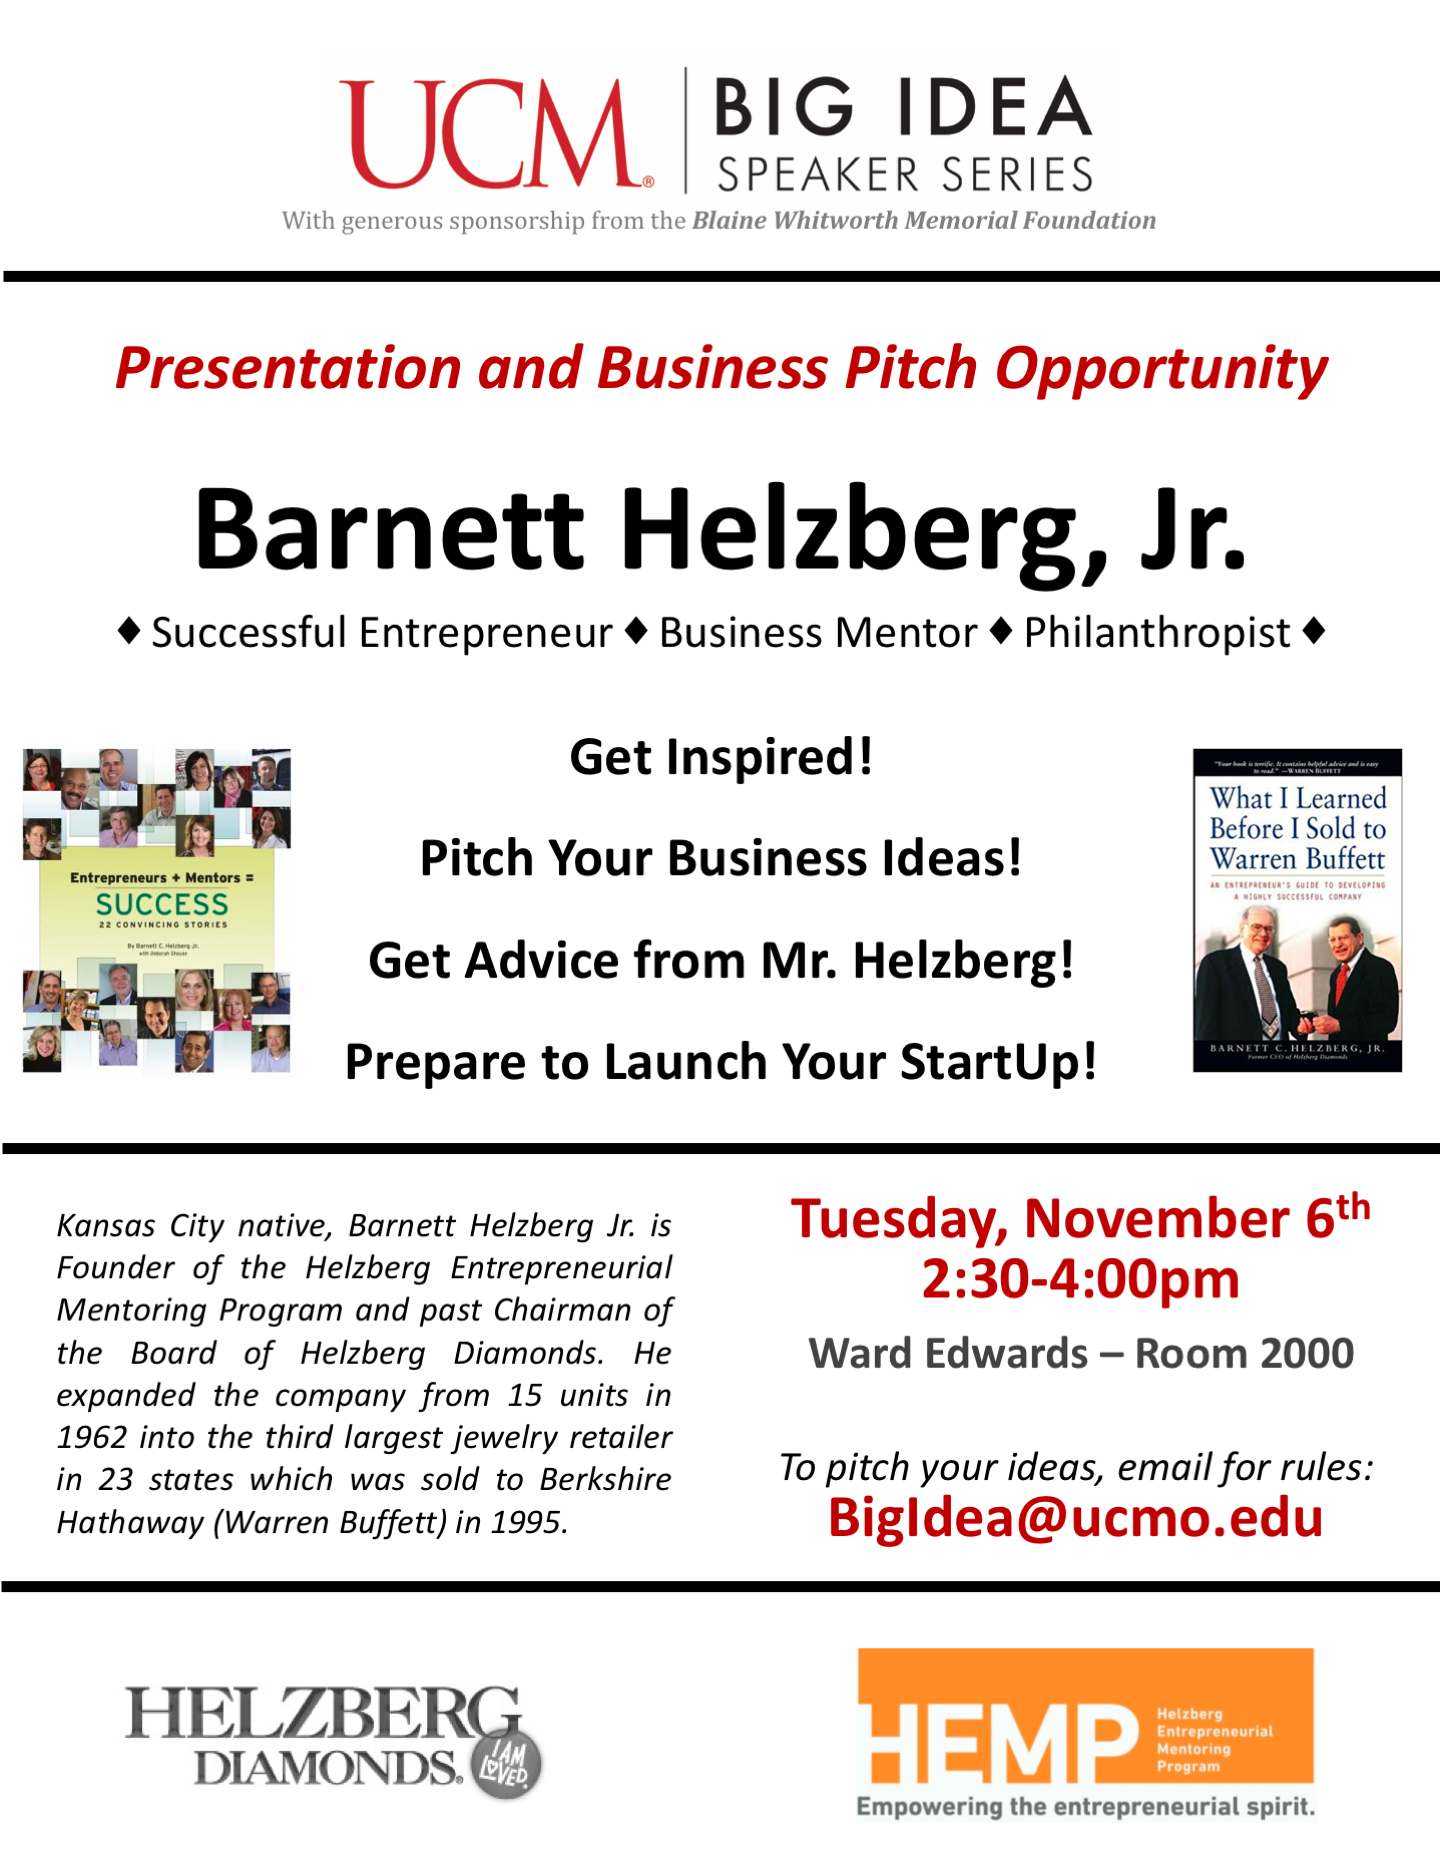 students have opportunity to pitch business ideas to kc entrepreneur